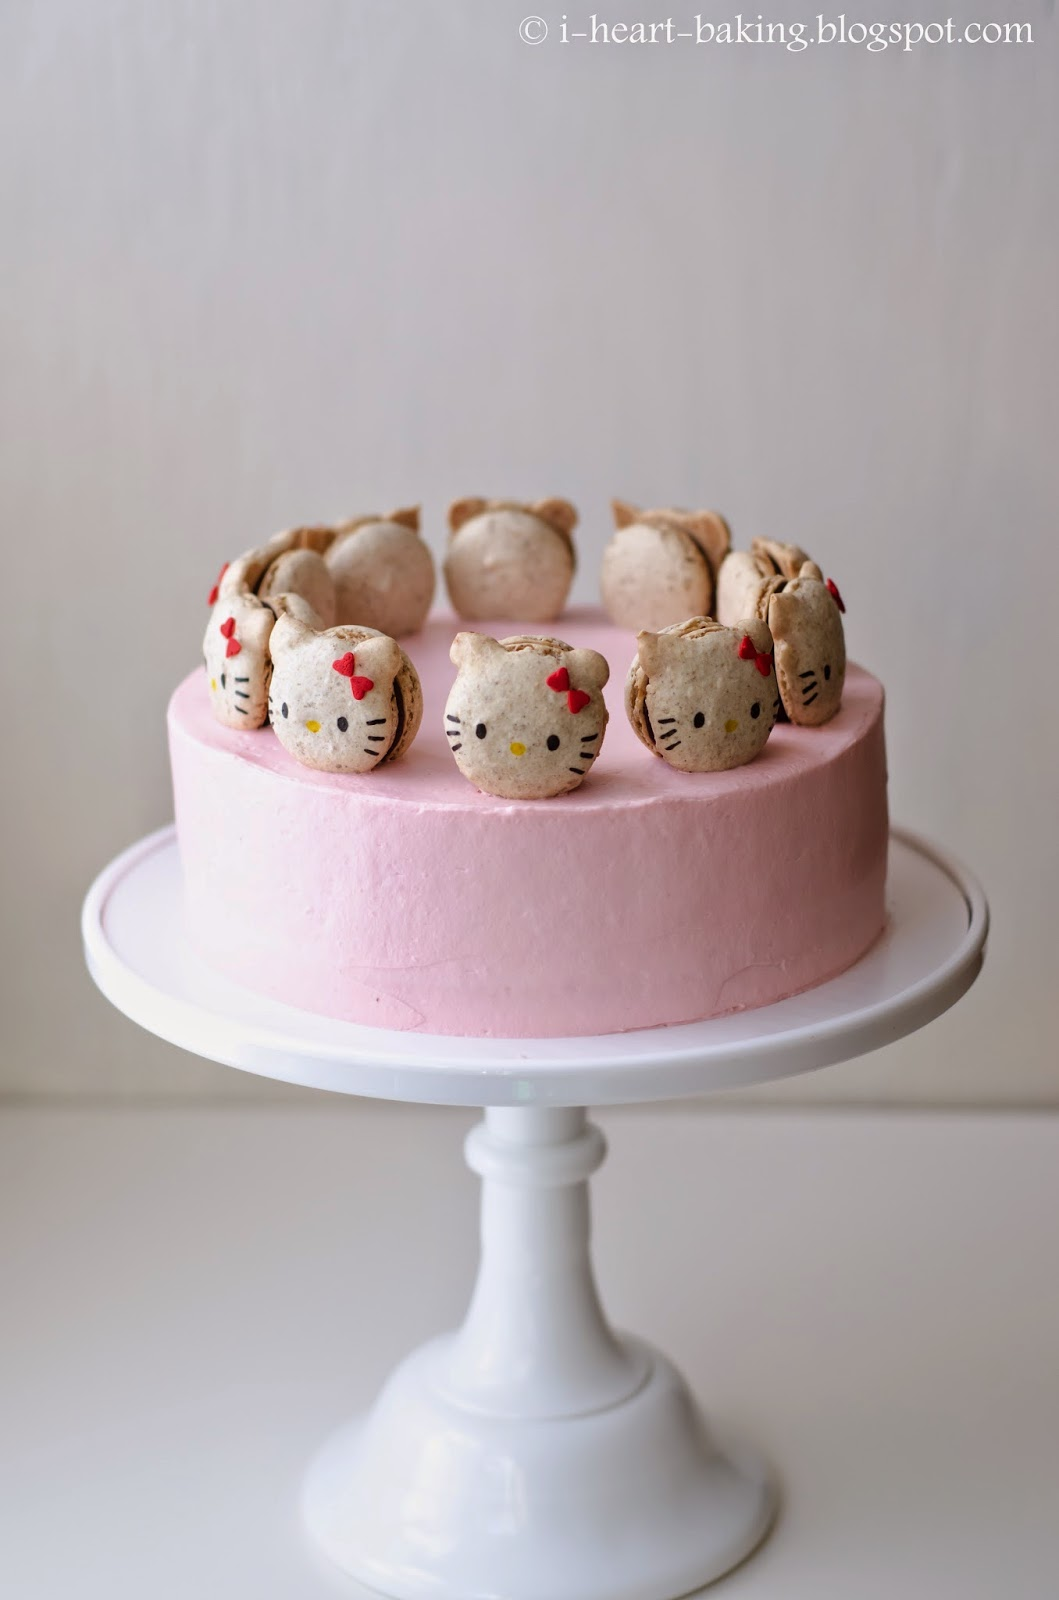 I Heart Baking Hello Kitty Macaron Cake With Neapolitan